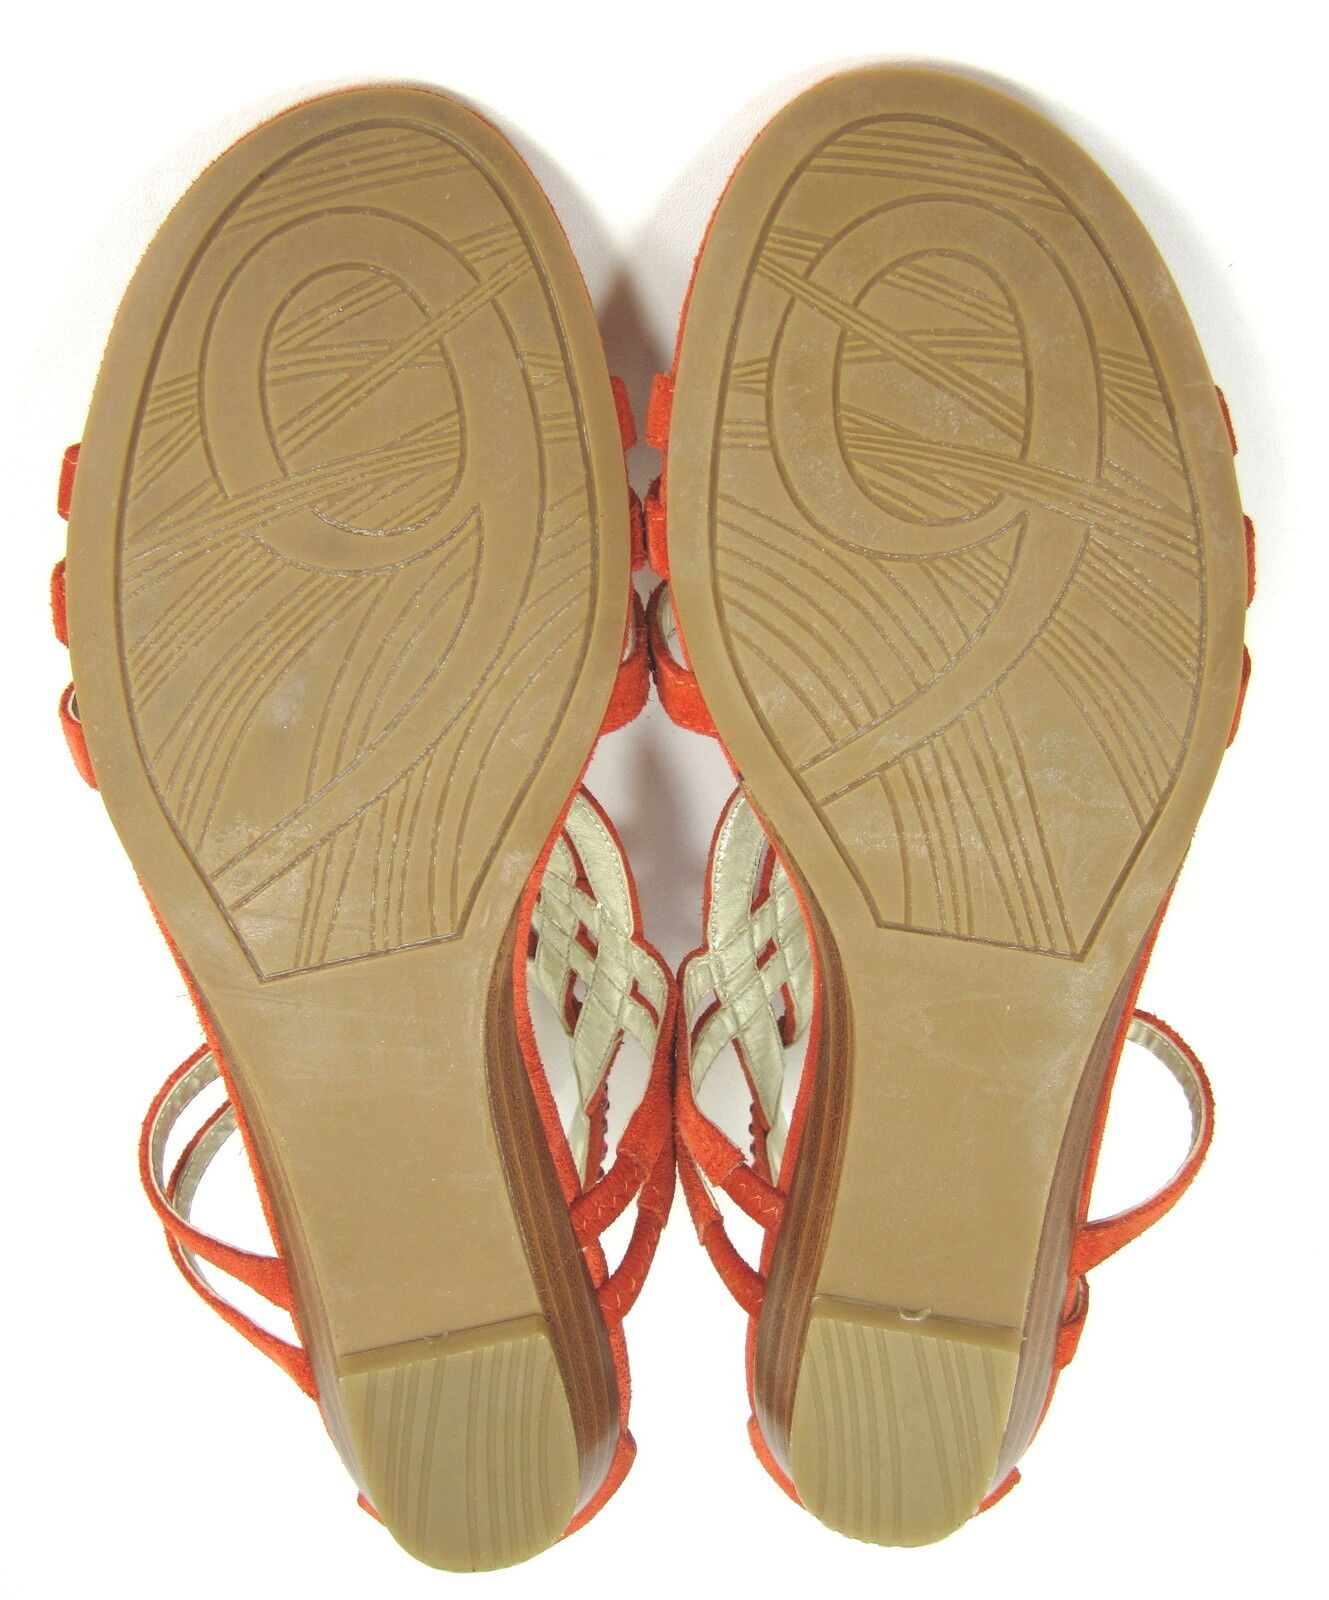 NINE WEST WOMEN'S MIMOSA MIMOSA WOMEN'S STRAPPY WEDGE SANDAL ORANGE SUEDE US SZ 7.5 MEDIUM (B)M d236fb